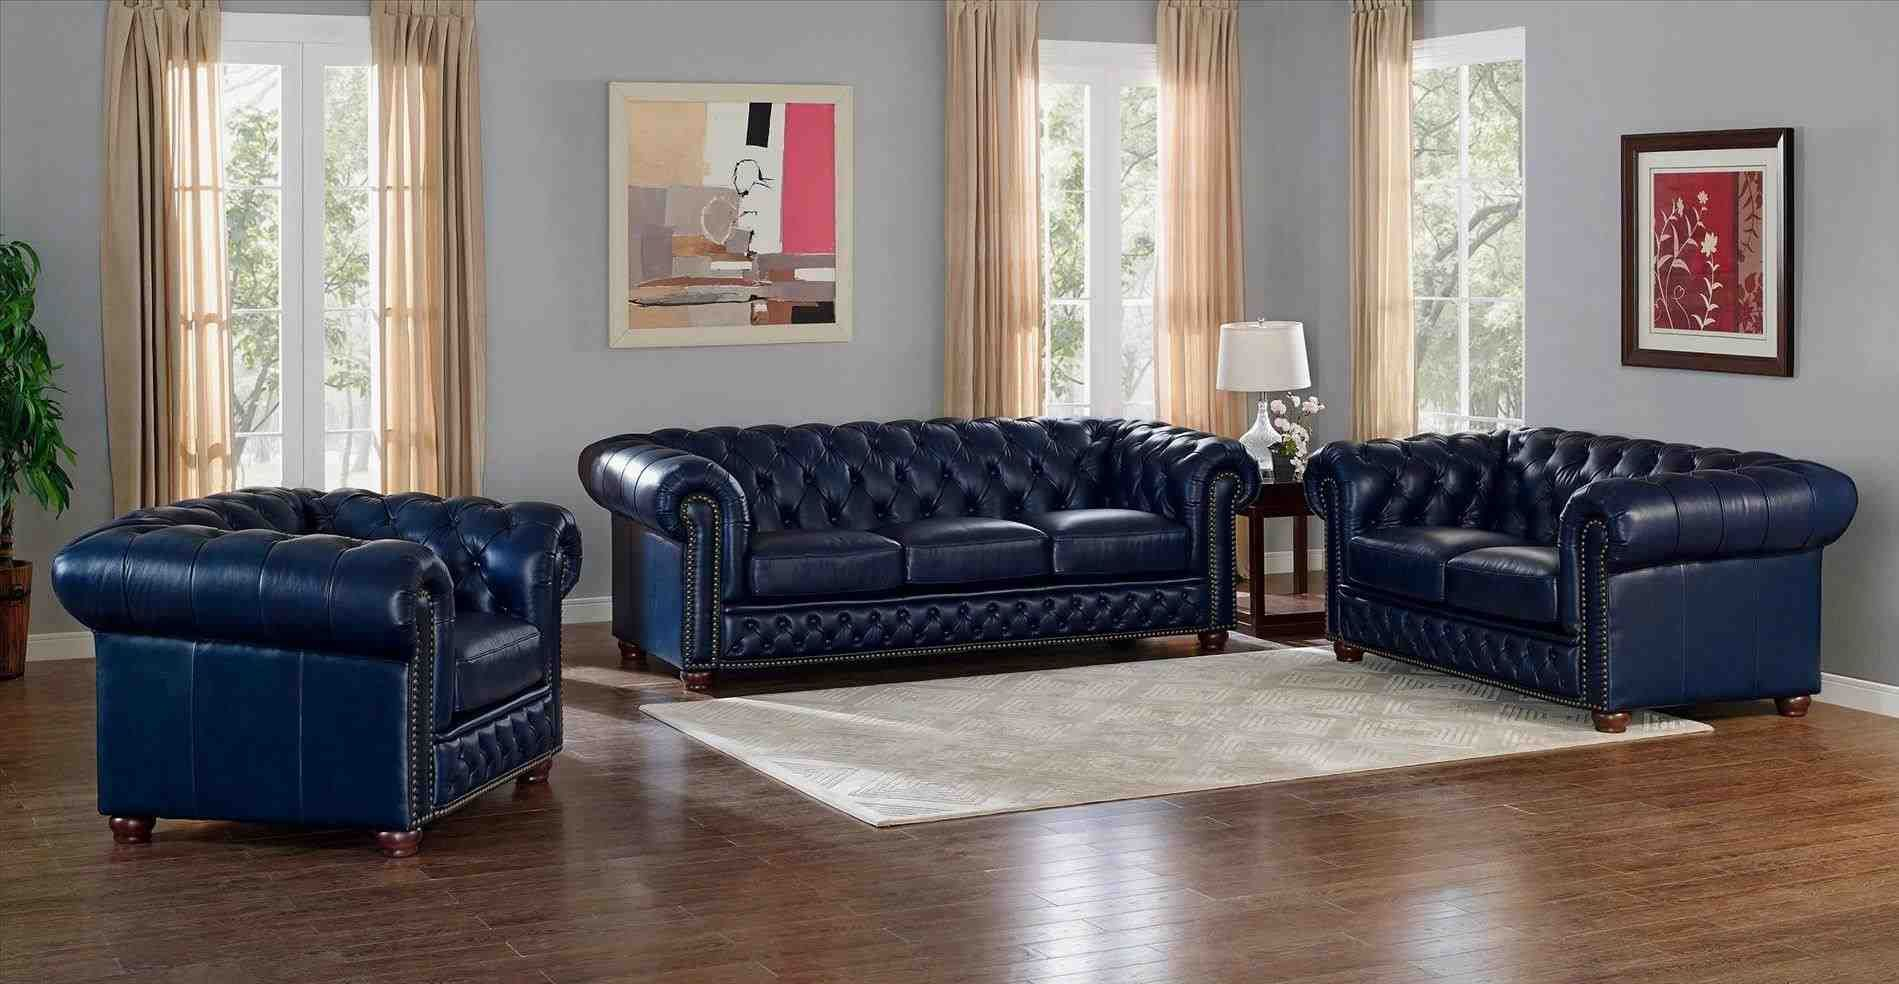 Cheap Leather Sofas Mississauga Turquoise Blue Velvet Damask Furniture Parsons Leather Chairs Living Room Sets Leather Living Room Set Living Room Leather